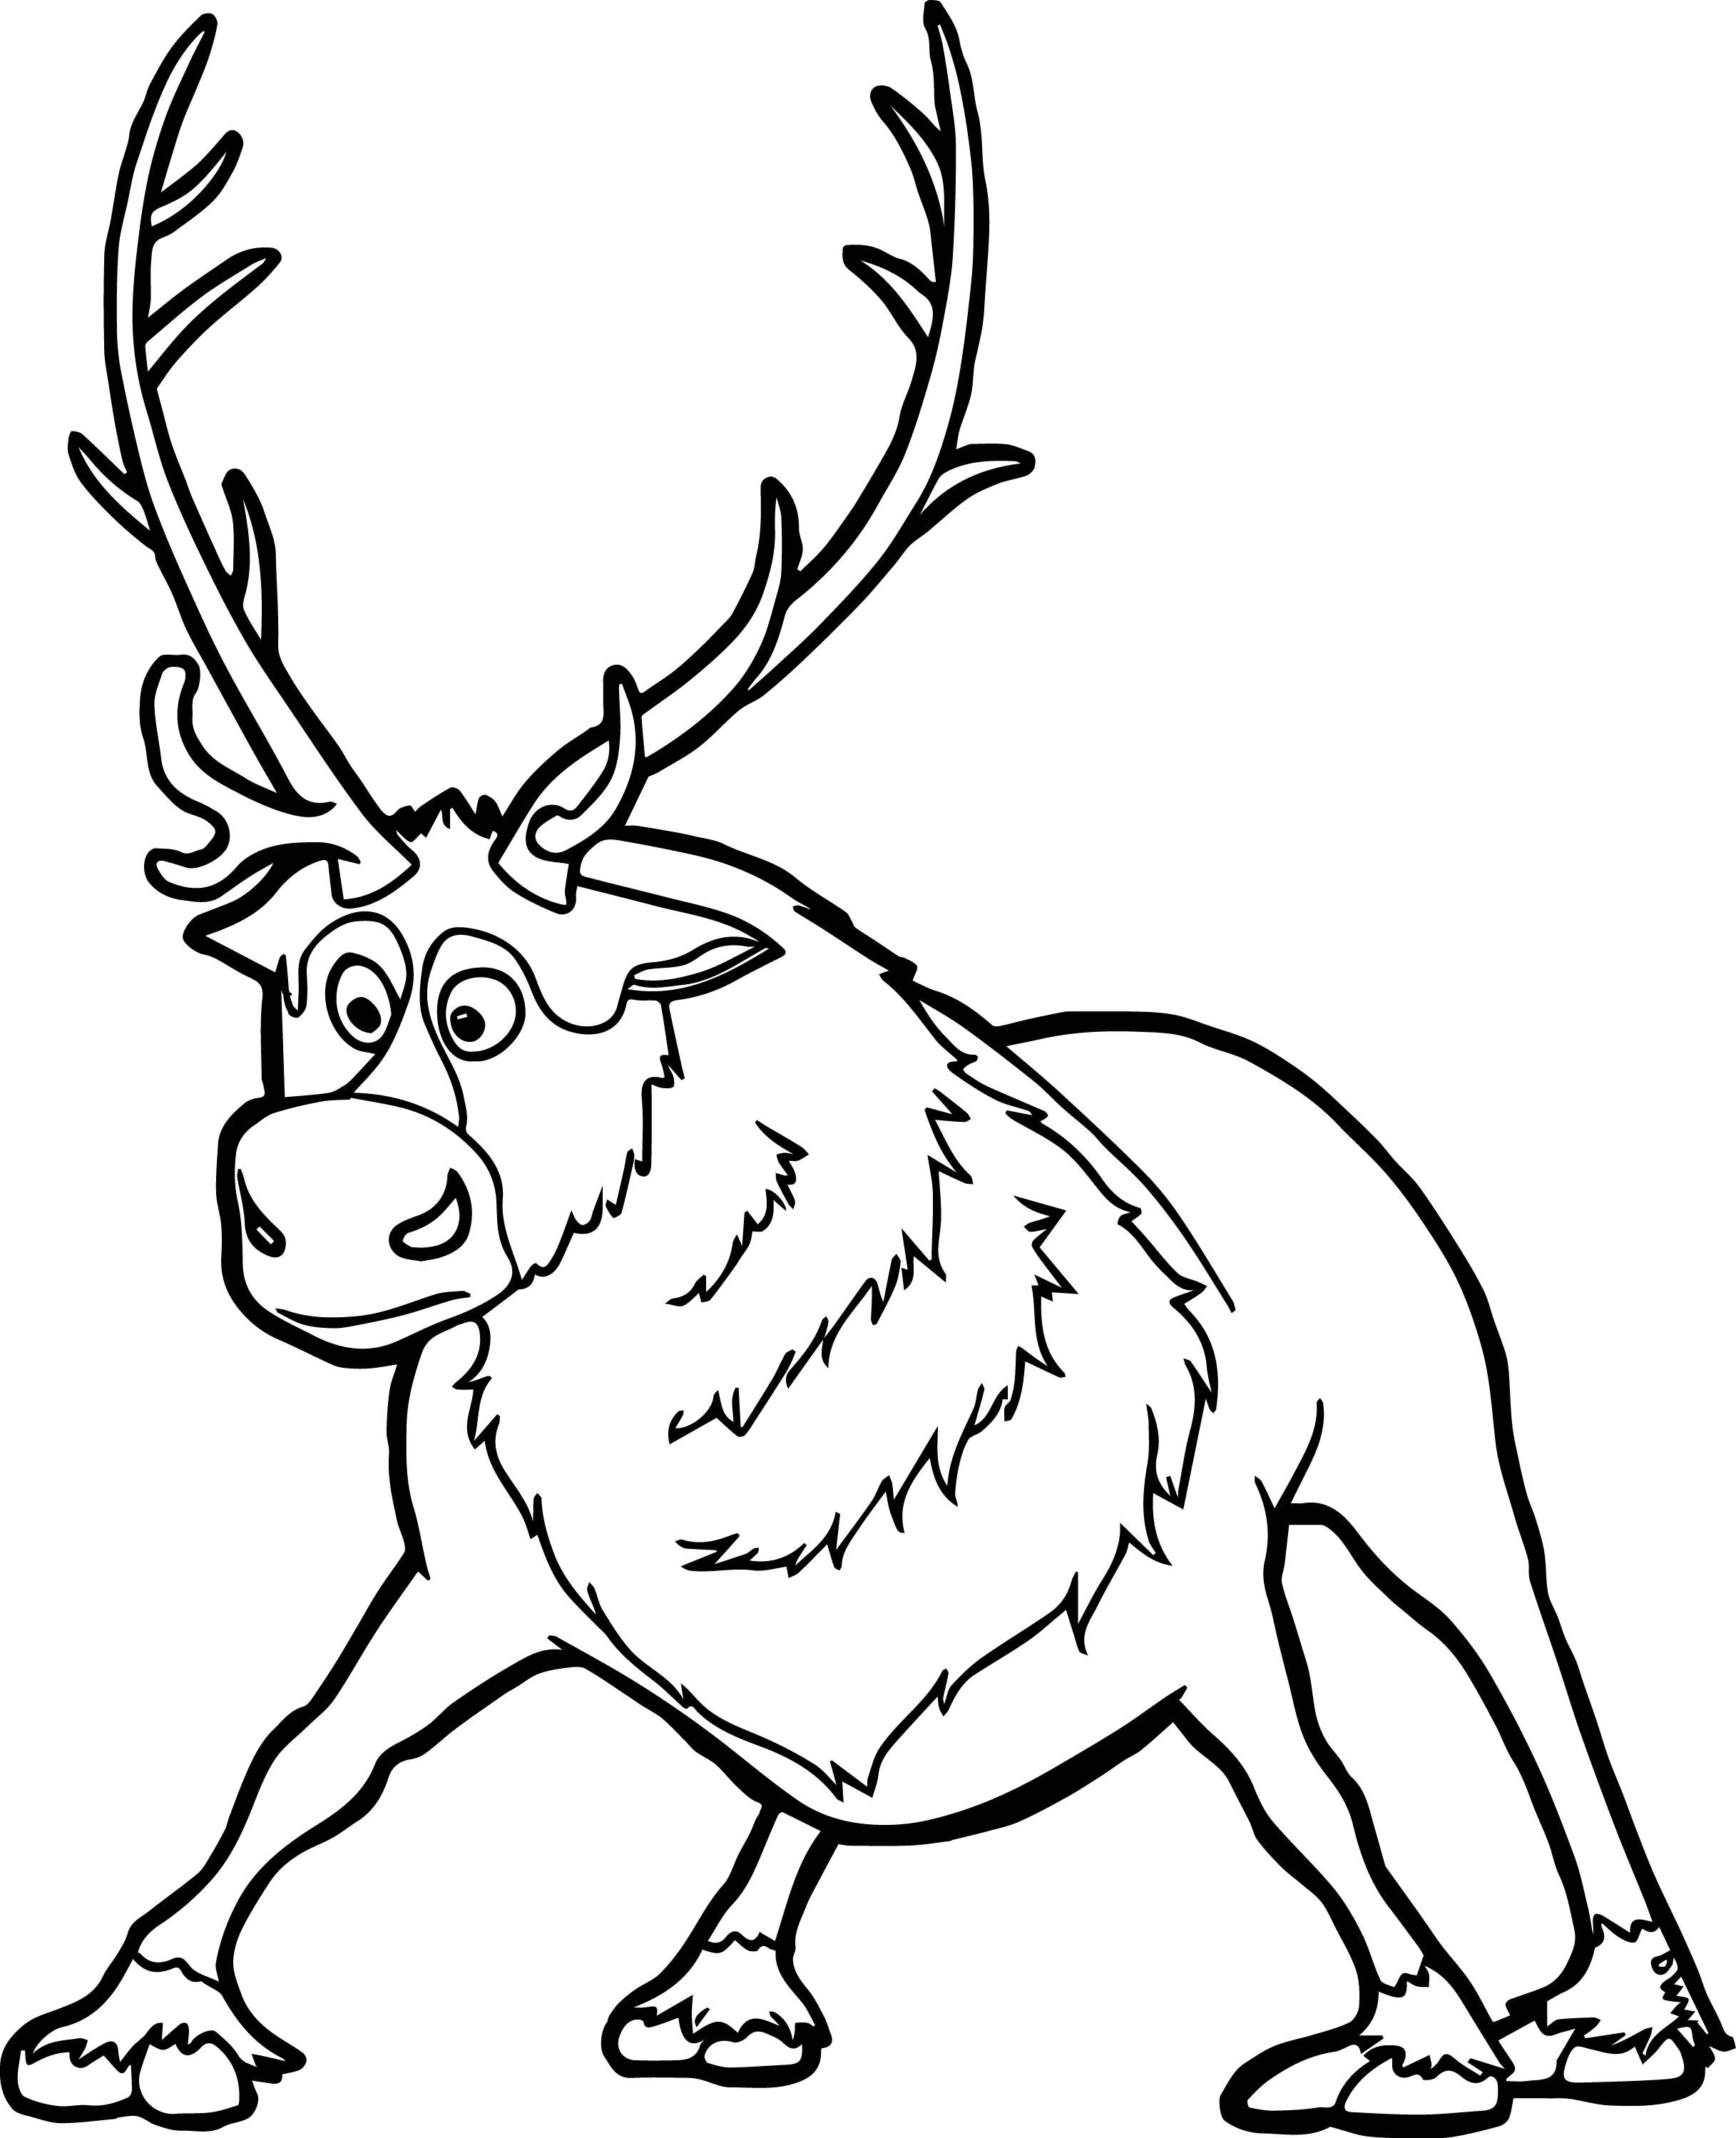 frozen coloring pages sven drawing from frozen coloring pages sven frozen sven coloring pages frozen